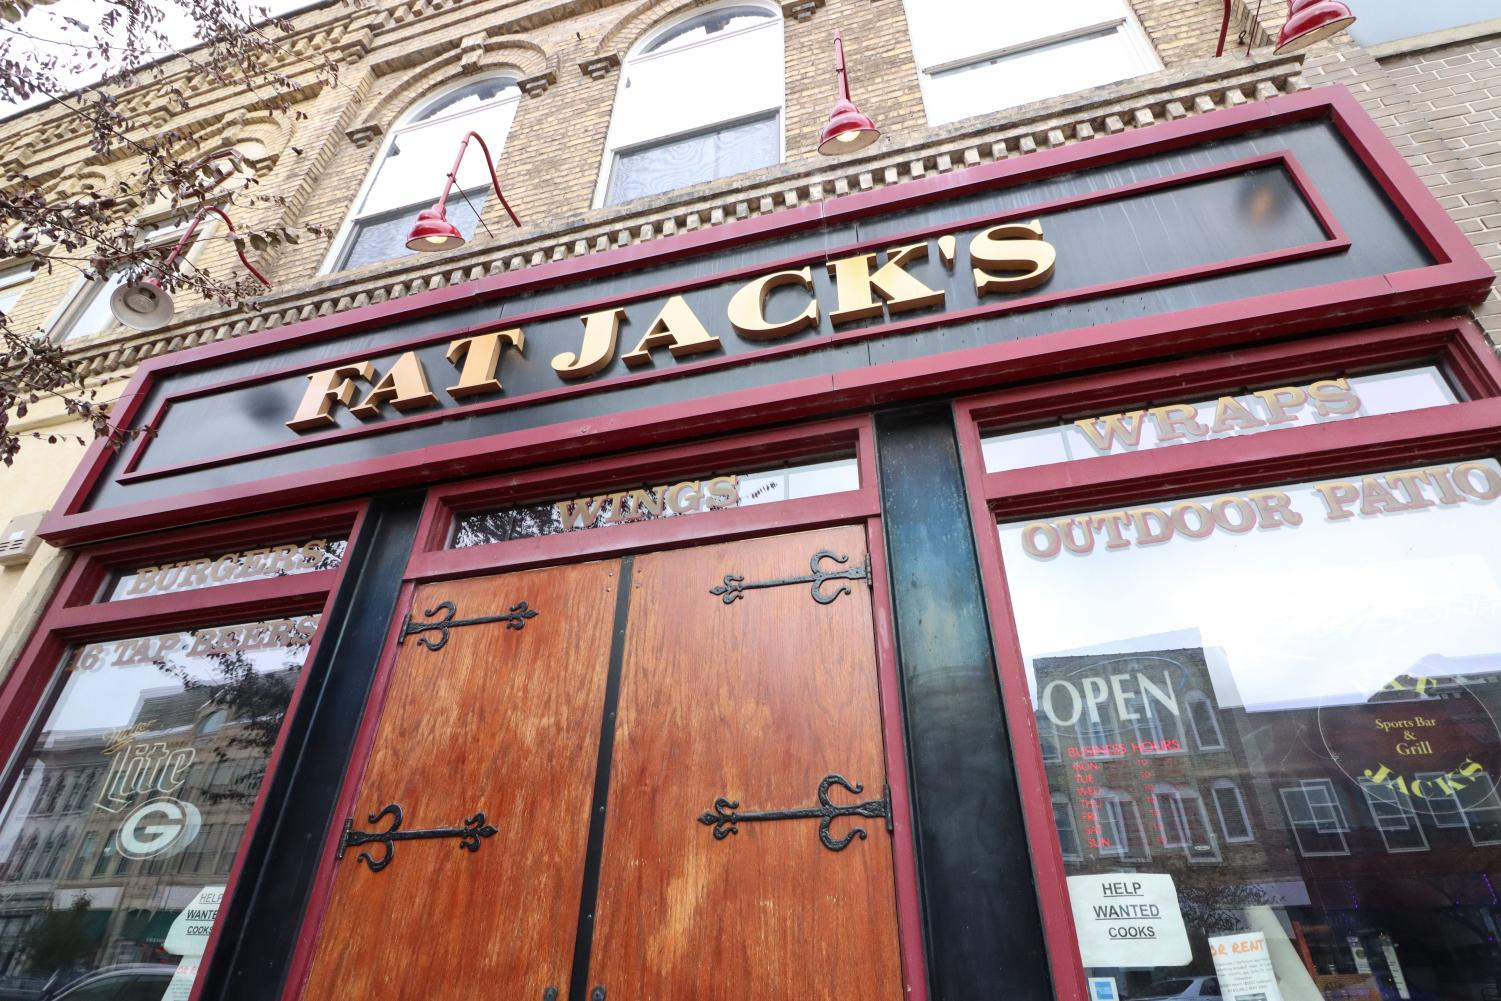 Fat Jacks on Main Street in Whitewater added a fun Tuesday night trivia event that includes different trivia suited to every interest. The uptick in visitors to the restaurant for trivia has also proven to be profitable revenue-wise. The business has seen a 50 percent increase in sales since the change.